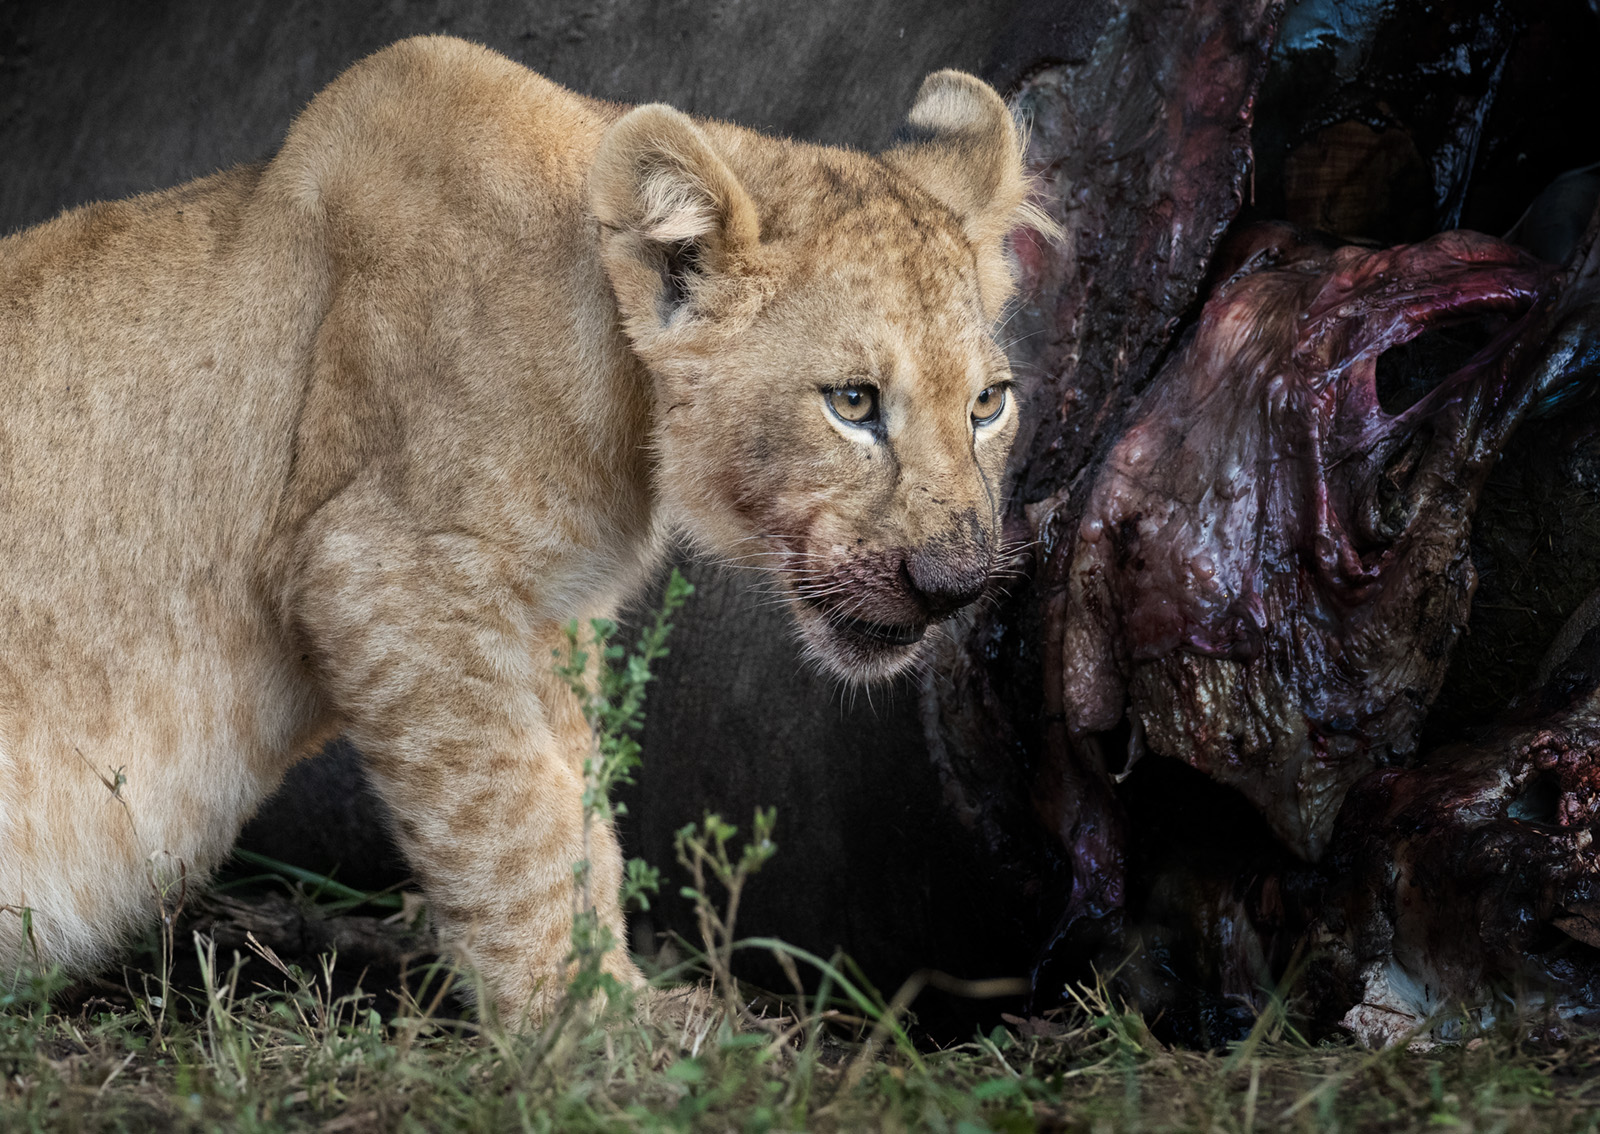 POSTPONED – 2020 Masai Mara Big Cats Safari